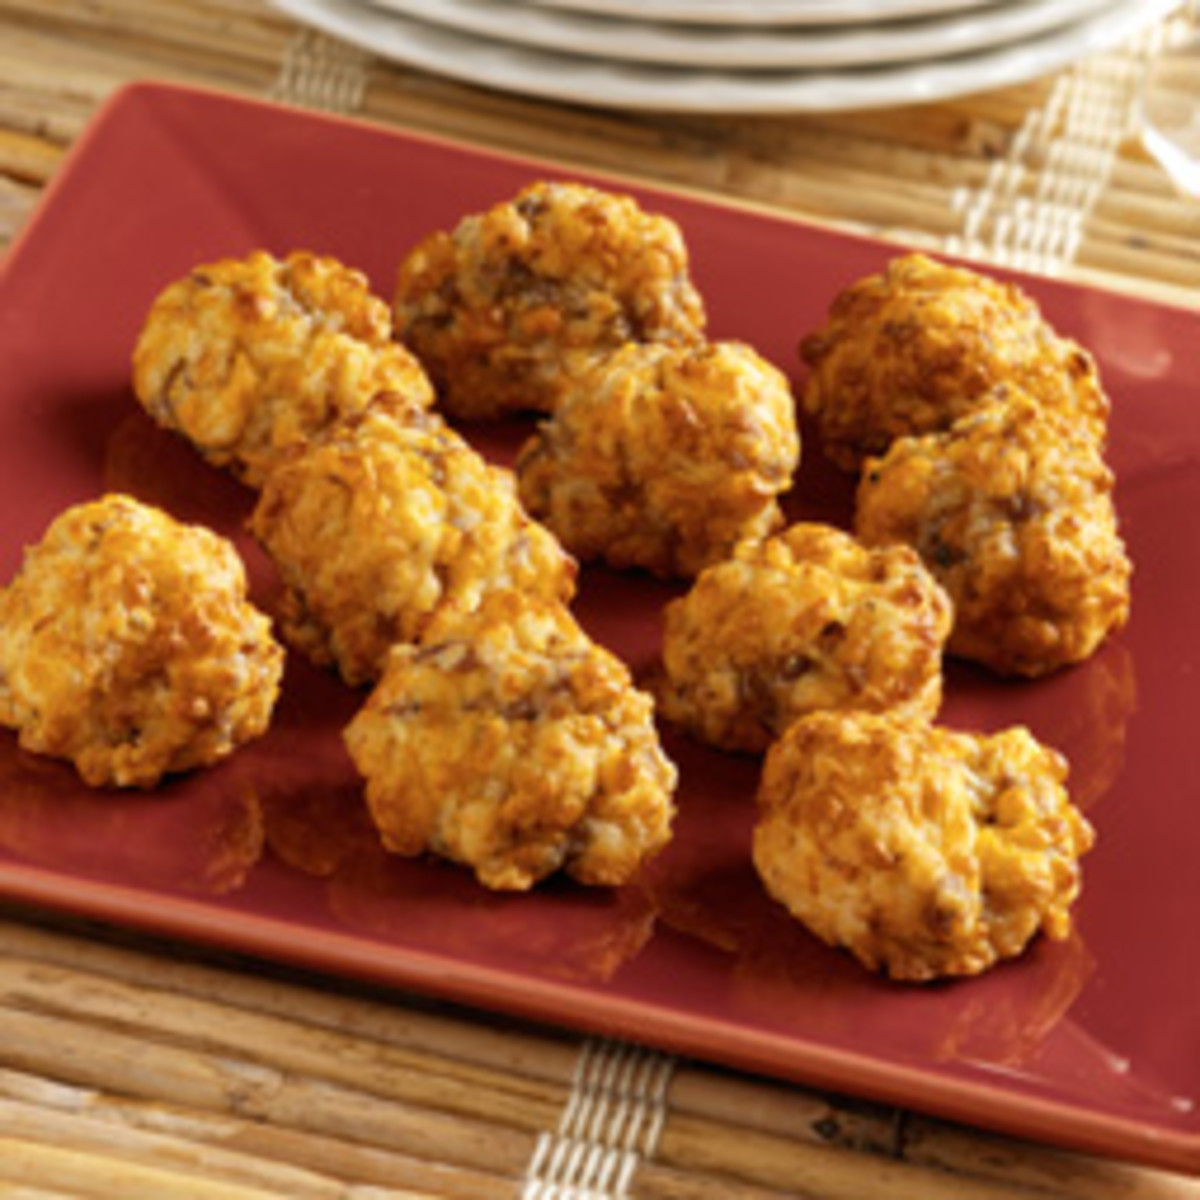 And cheese balls are oh so delicious and one of the best appetizers